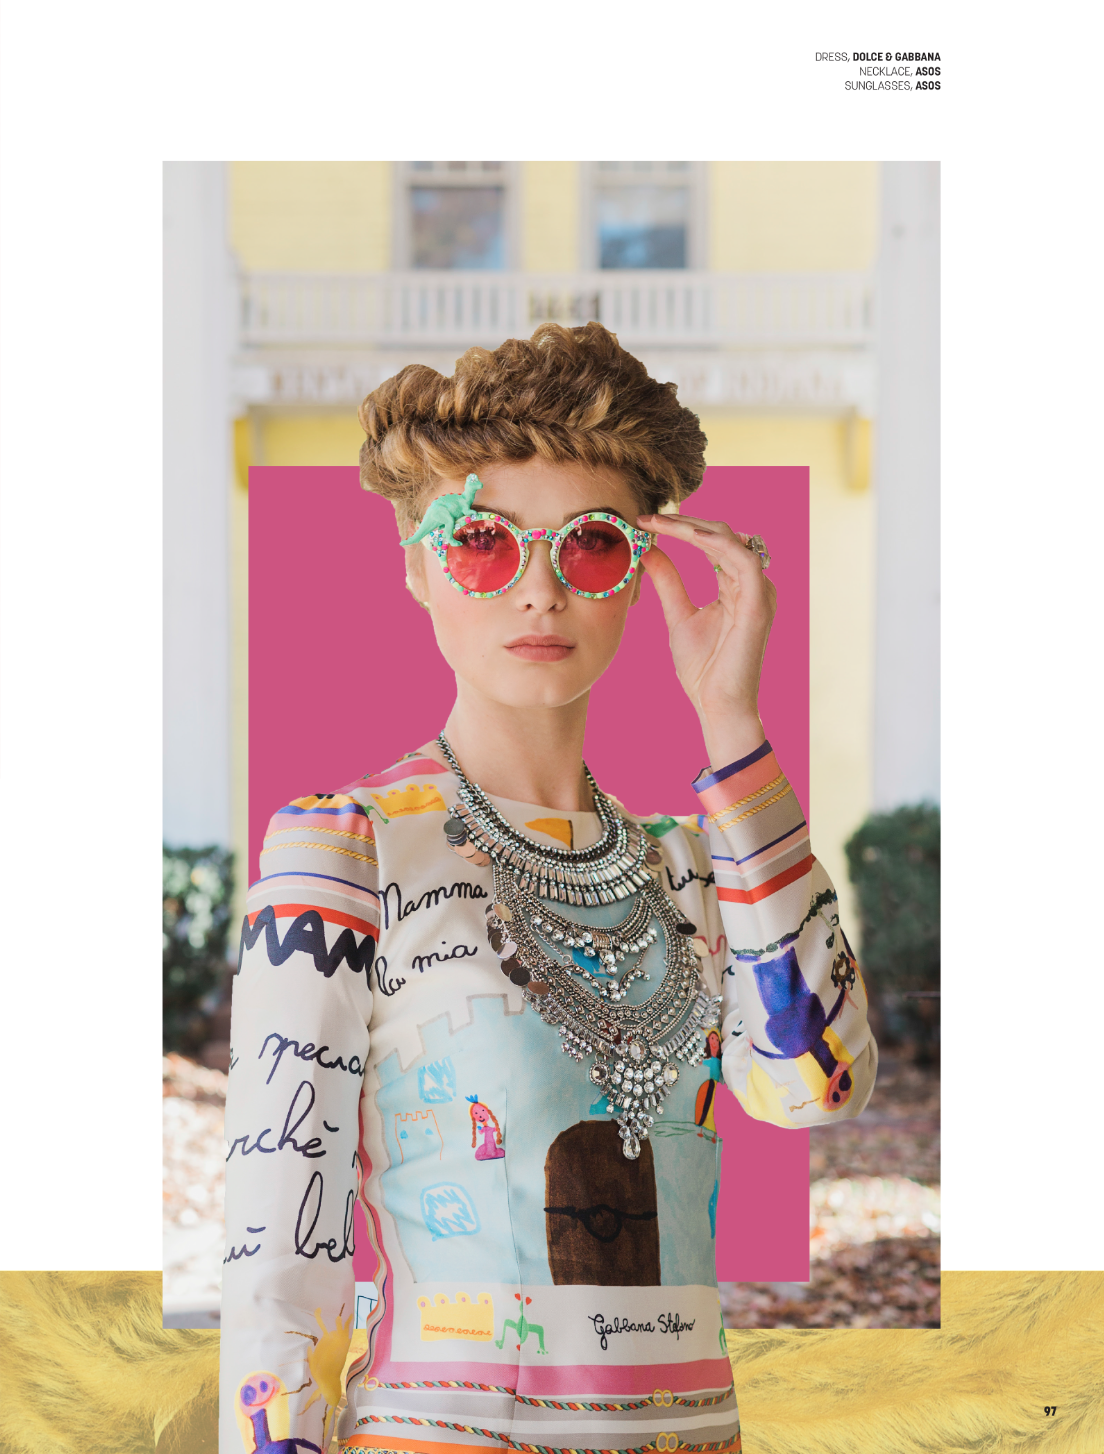 Screen Shot 2017-04-05 at 10.10.37 PM